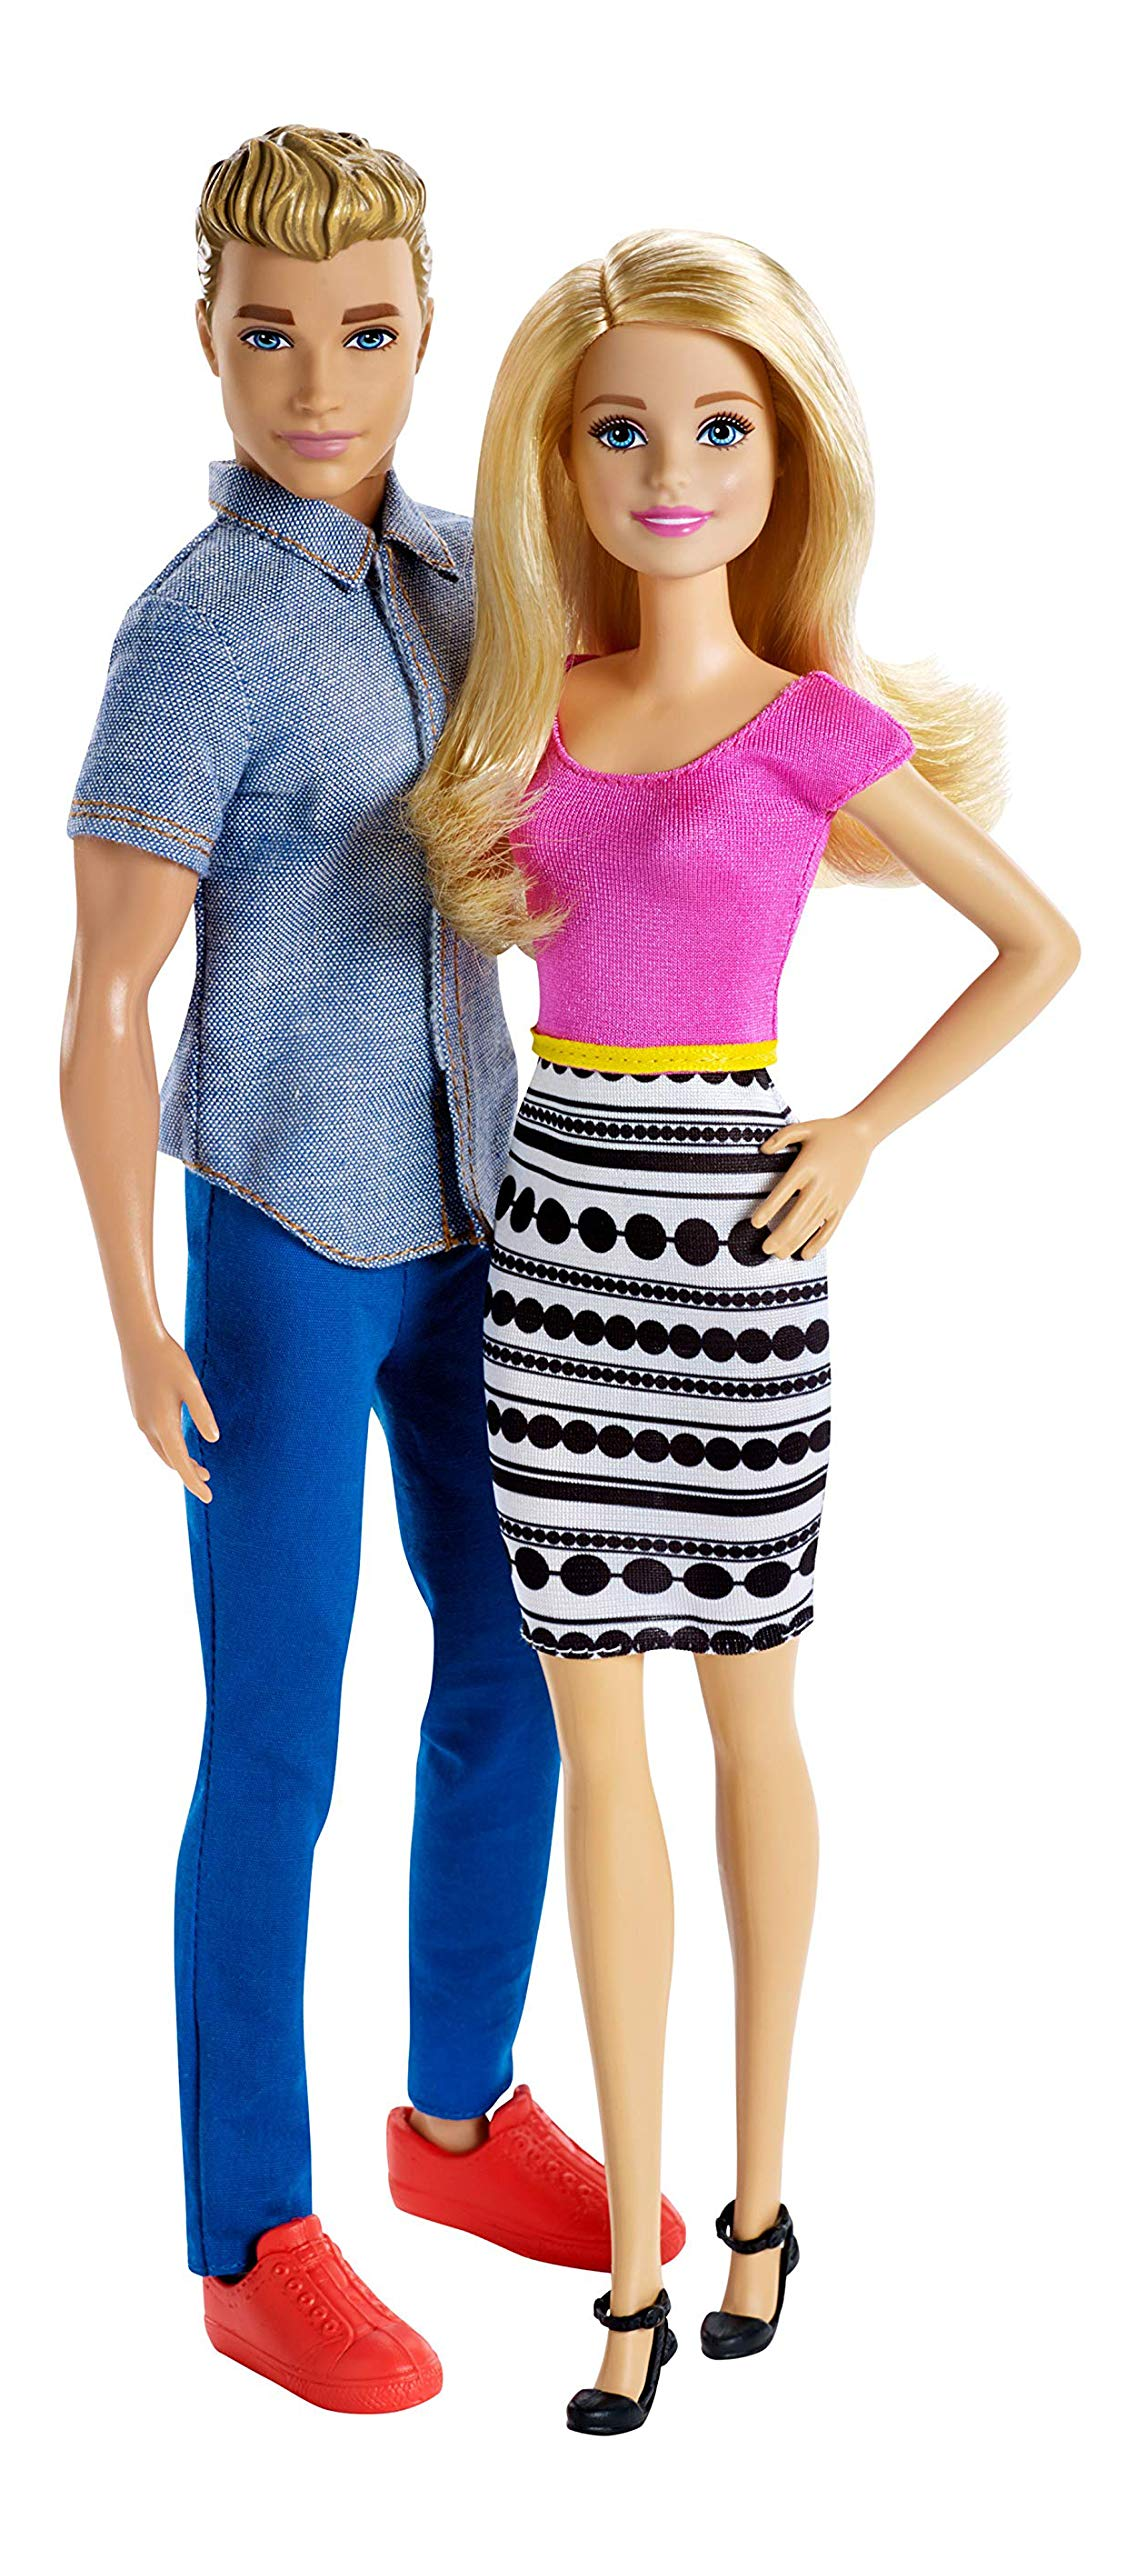 Barbie and Ken Doll Together! [Amazon Exclusive]